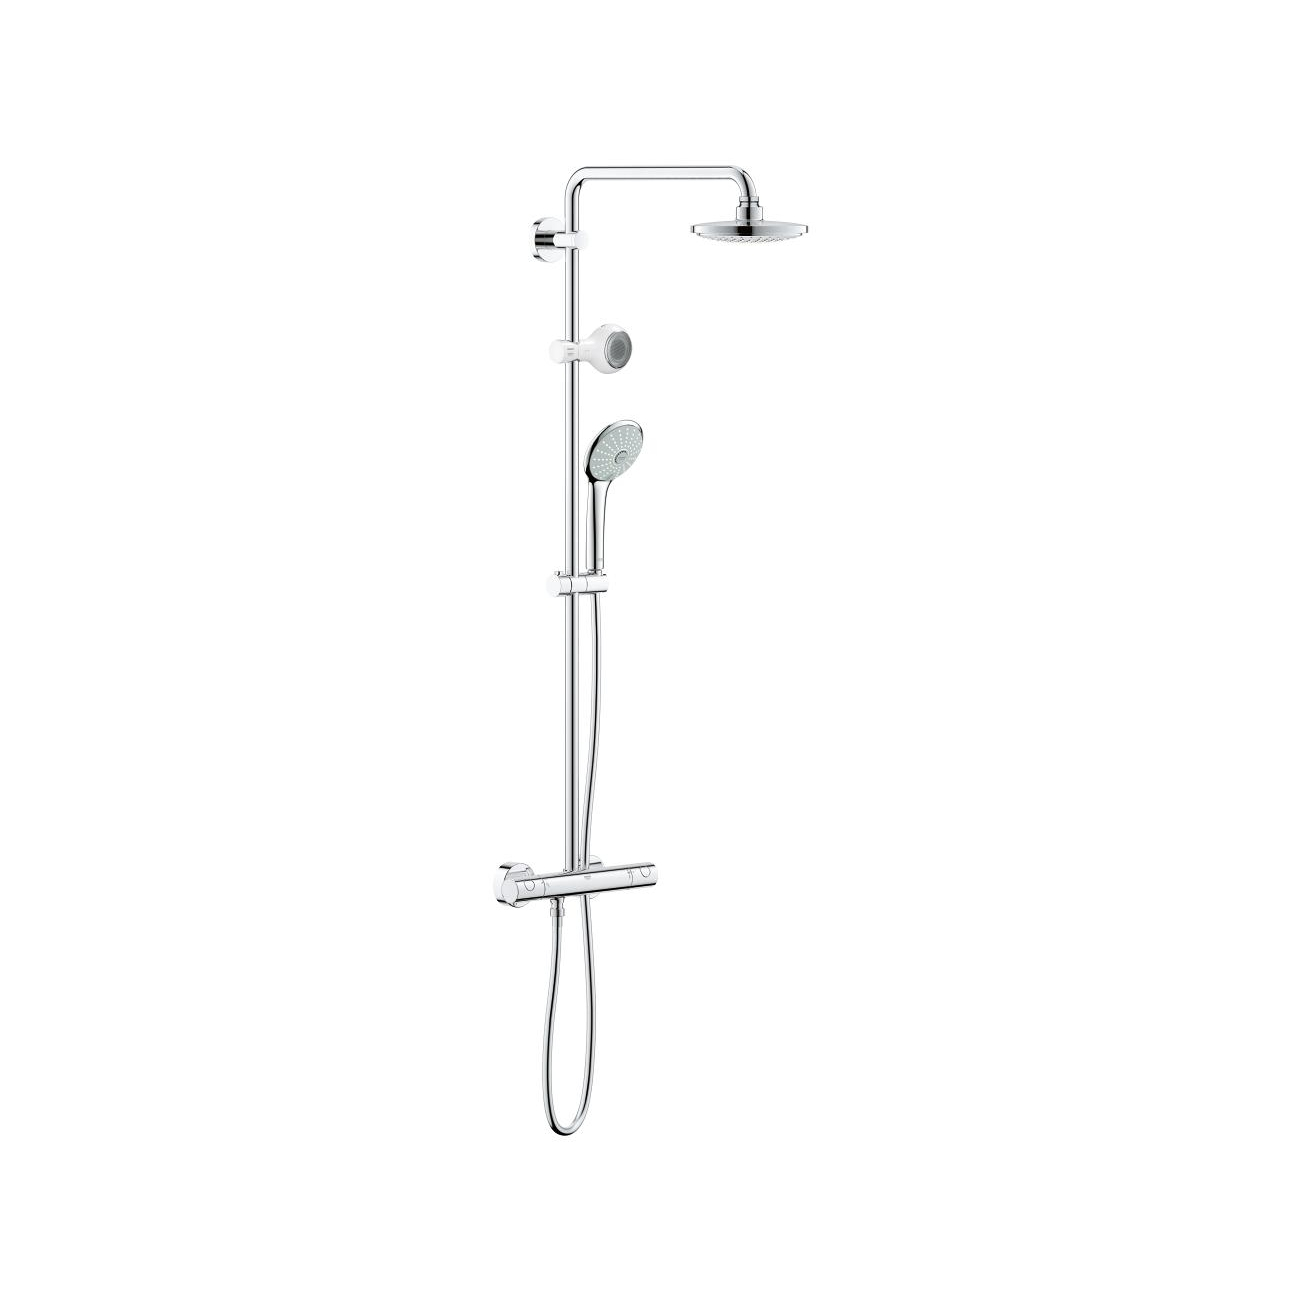 Grohe euphoria system 180 with thermostat for wall mounting tattahome - Grohe euphoria system 180 ...